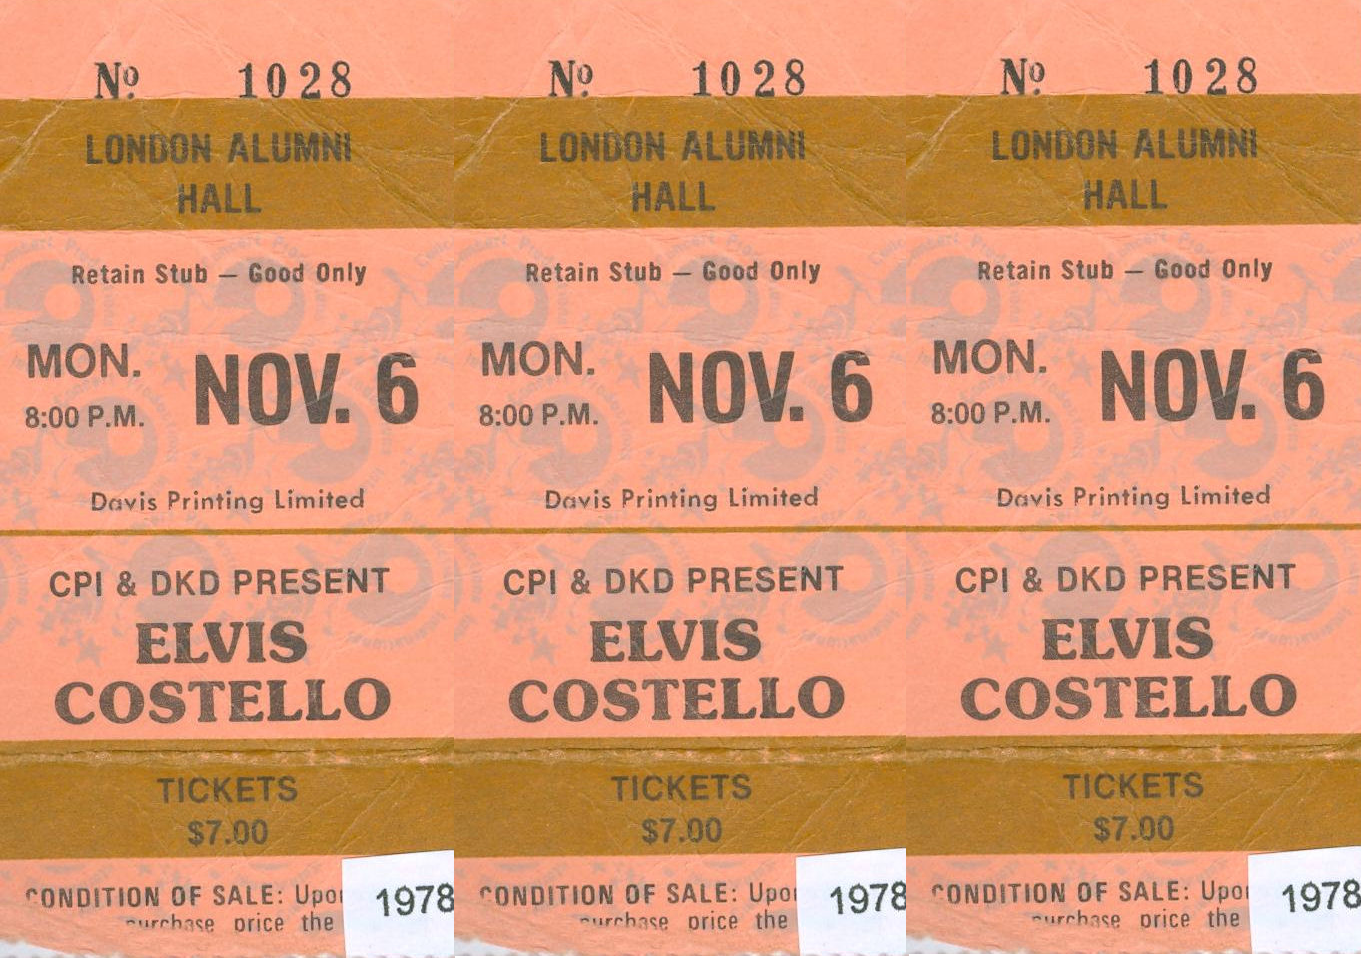 Elvis Costello and The Attractions, Alumni Hall, London, Ontario, Canada, Monday November 6, 1978, Ticket, mylifeinconcert.com, Episode 8, Concert Number 3